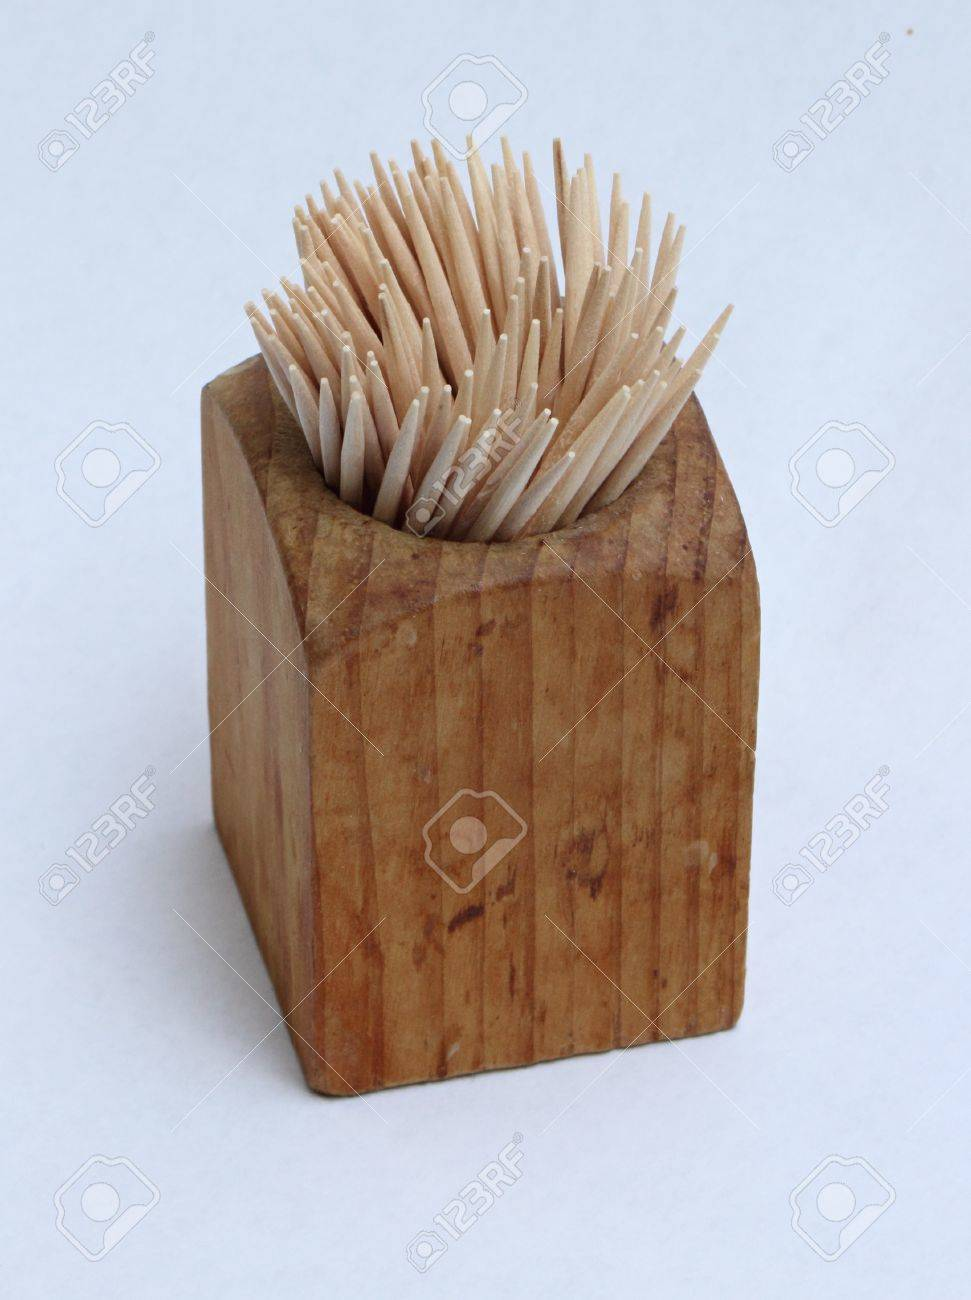 Wooden Toothpick Holder Stock Photo Picture And Royalty Free Image Image 16616963